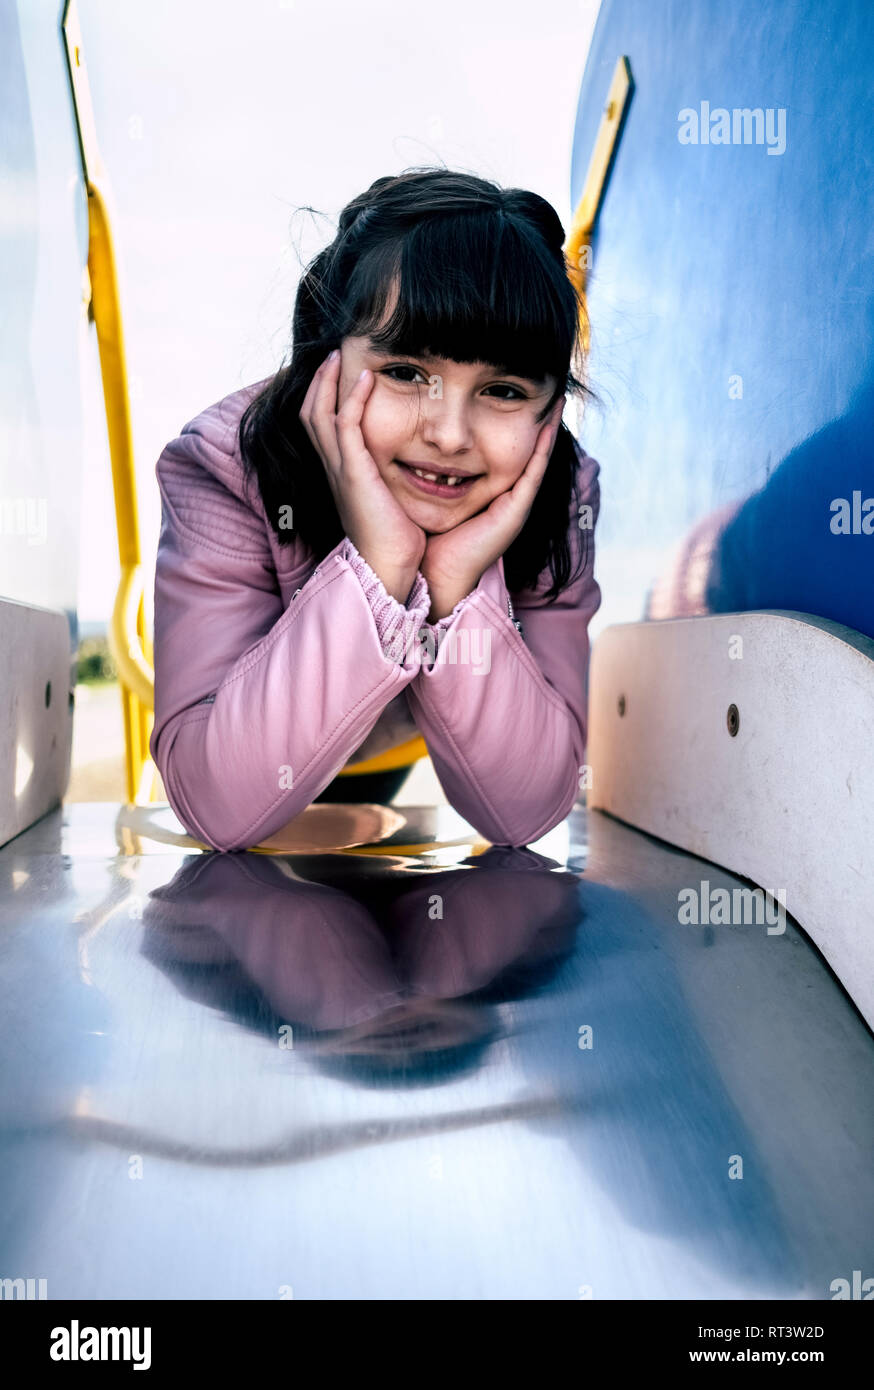 Portrait of girl leaning on slide of a  playground - Stock Image